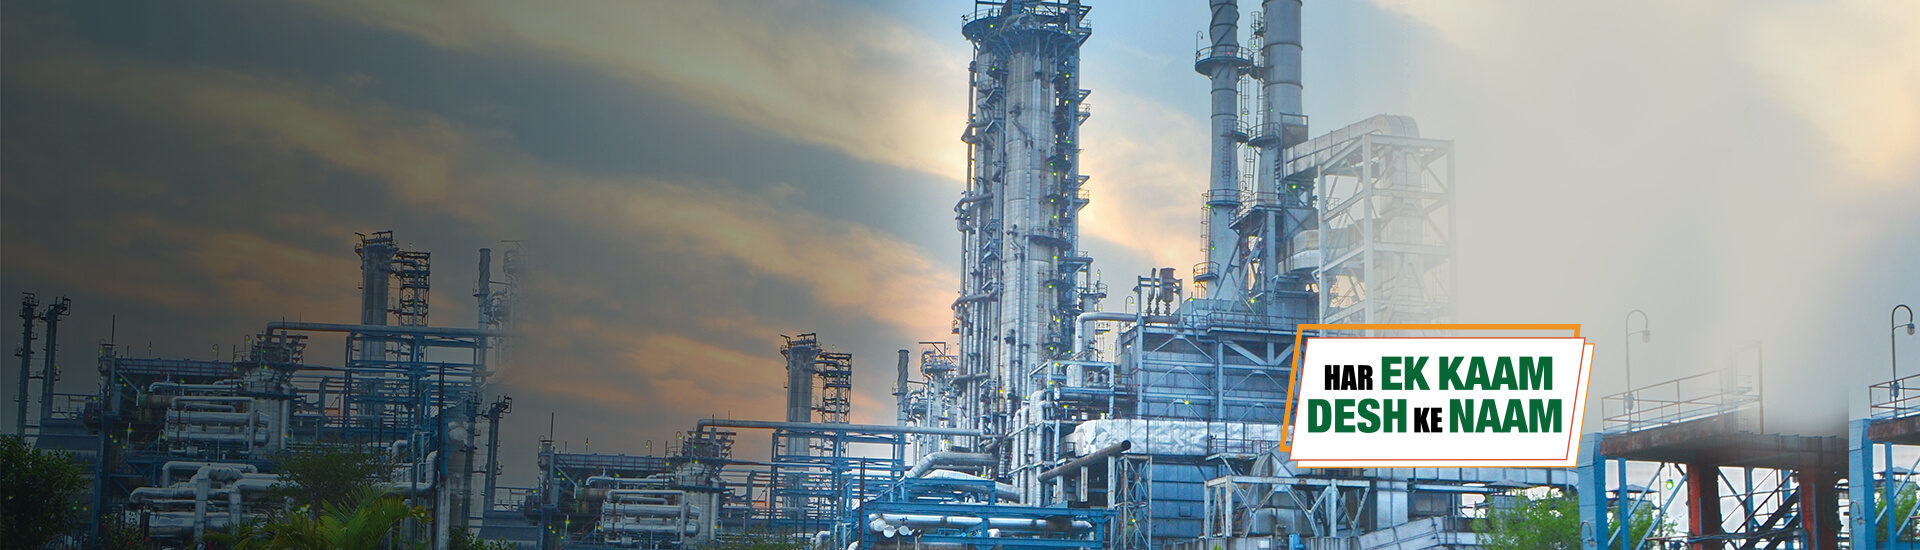 BPCL refineries are equipped with latest global technologies to produce BS VI fuels